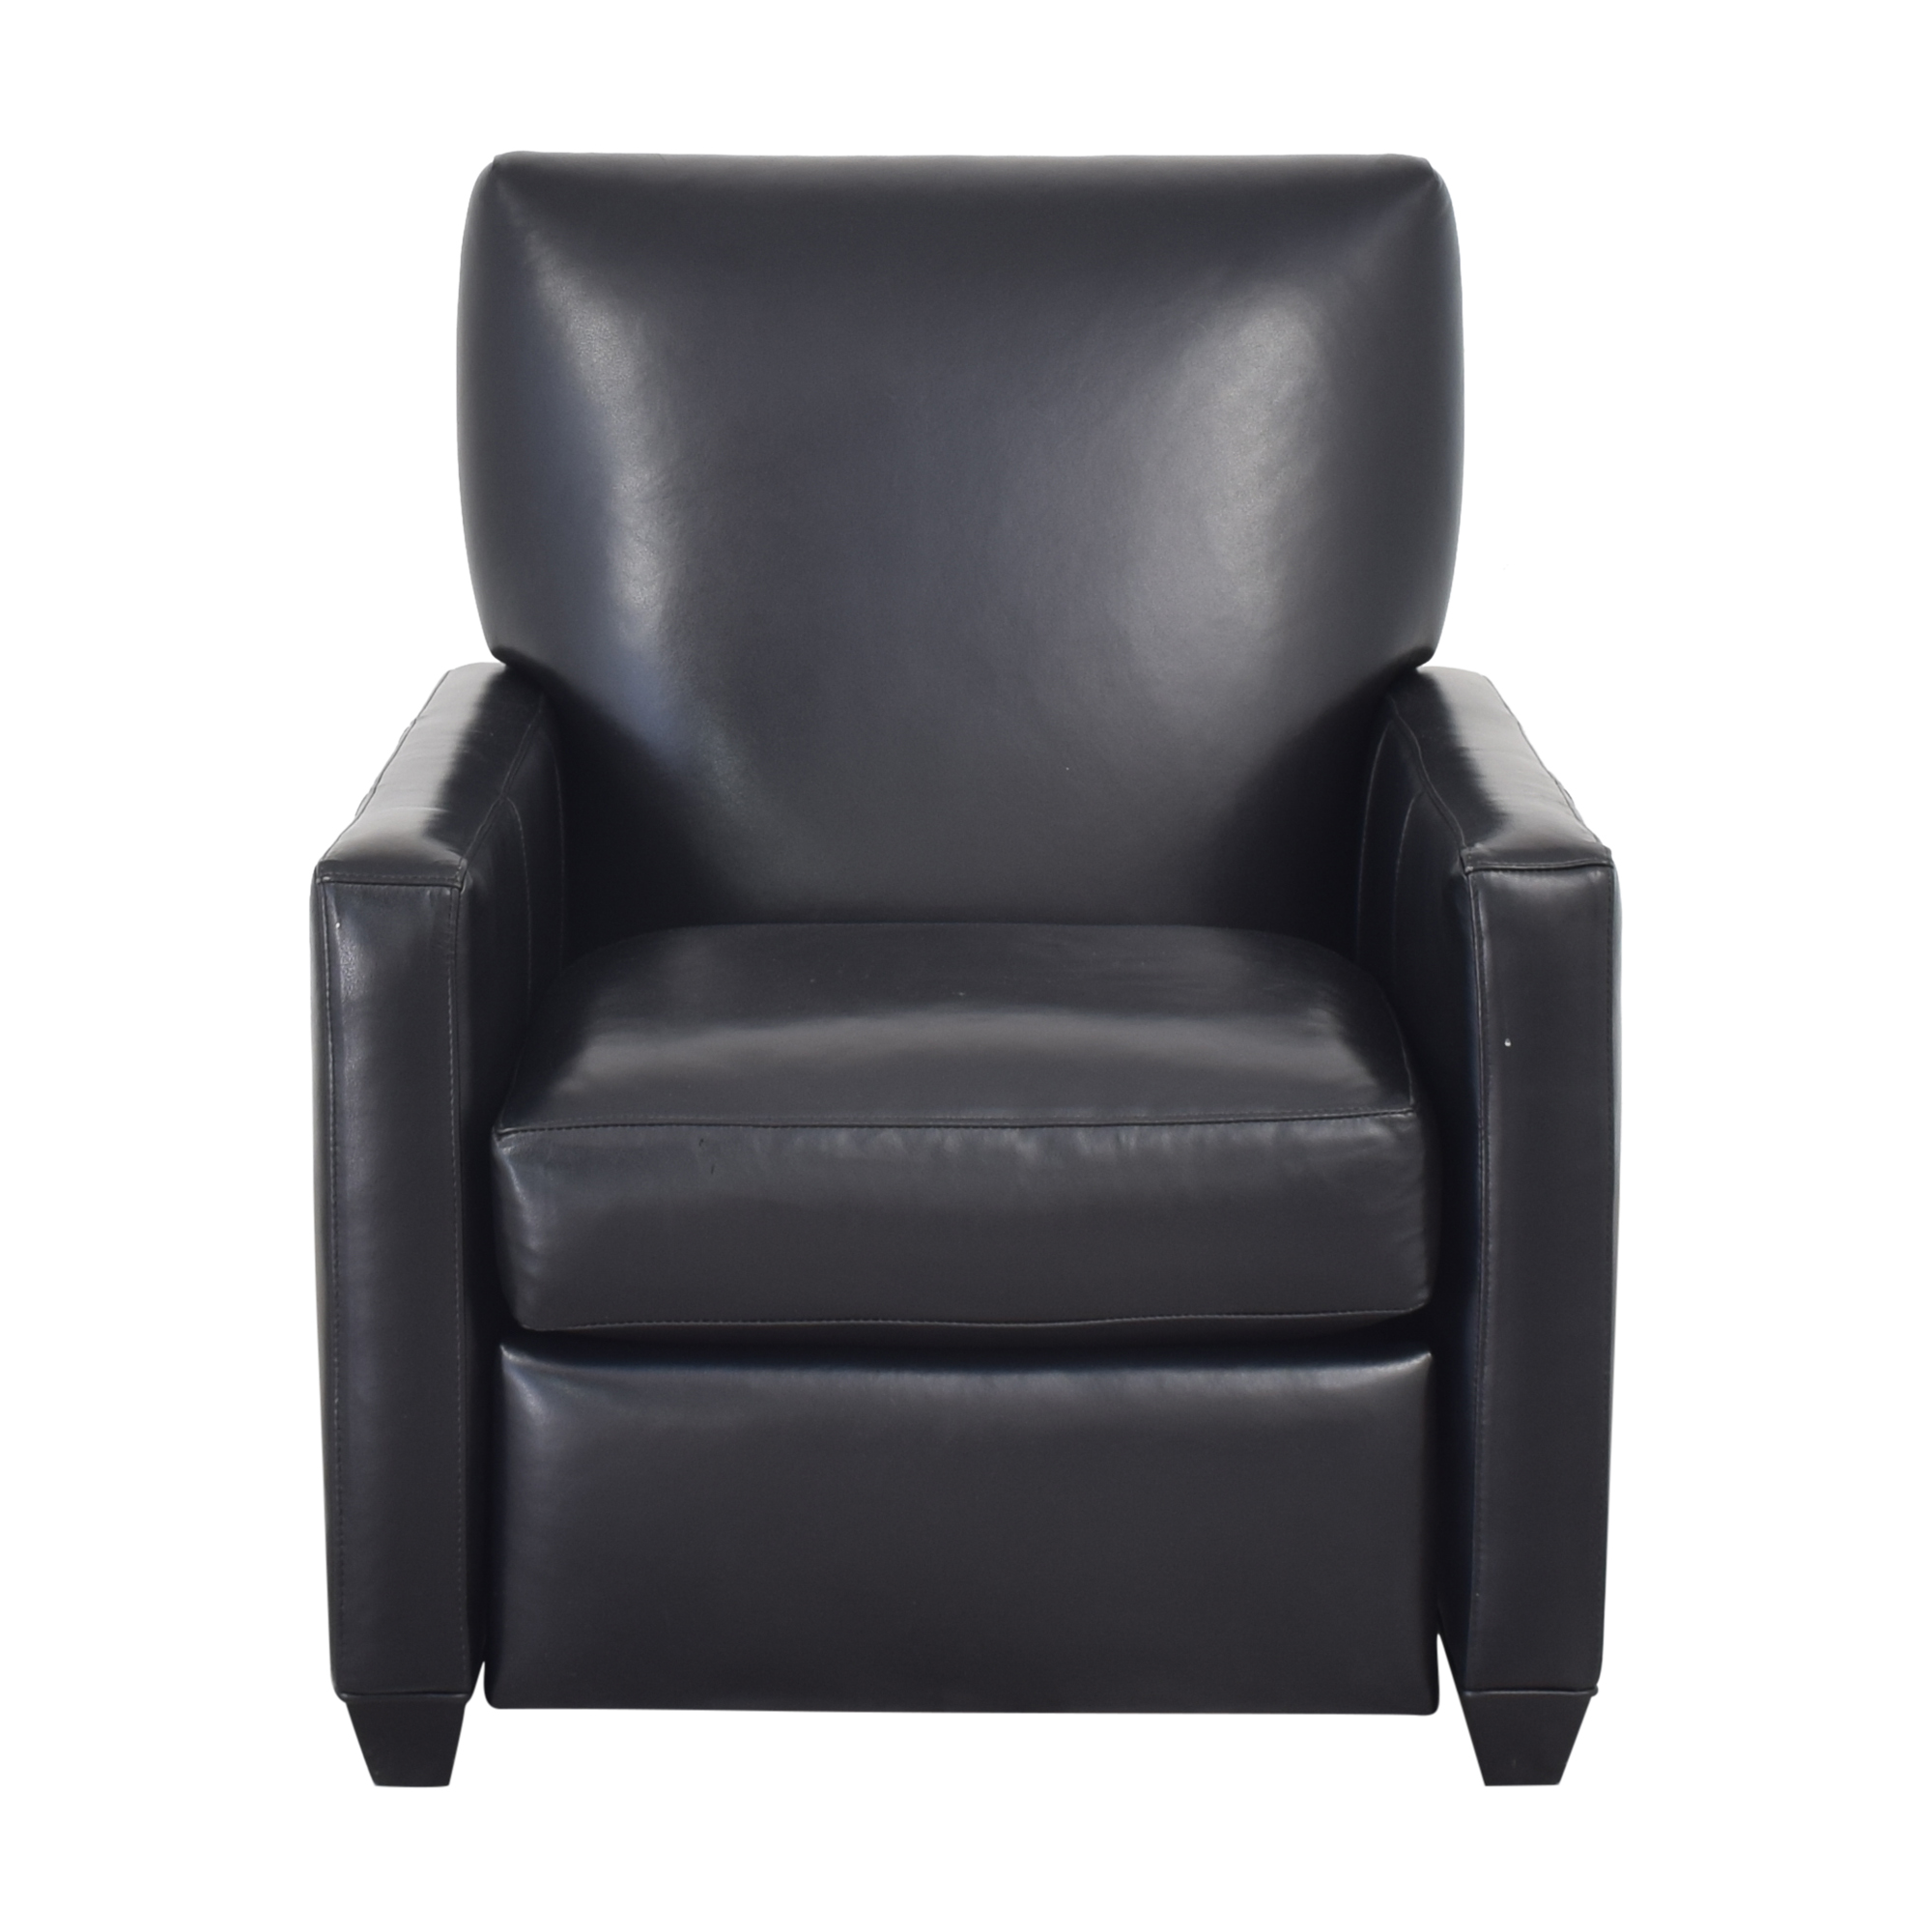 shop Crate & Barrel Tracy Leather Recliner Crate & Barrel Chairs